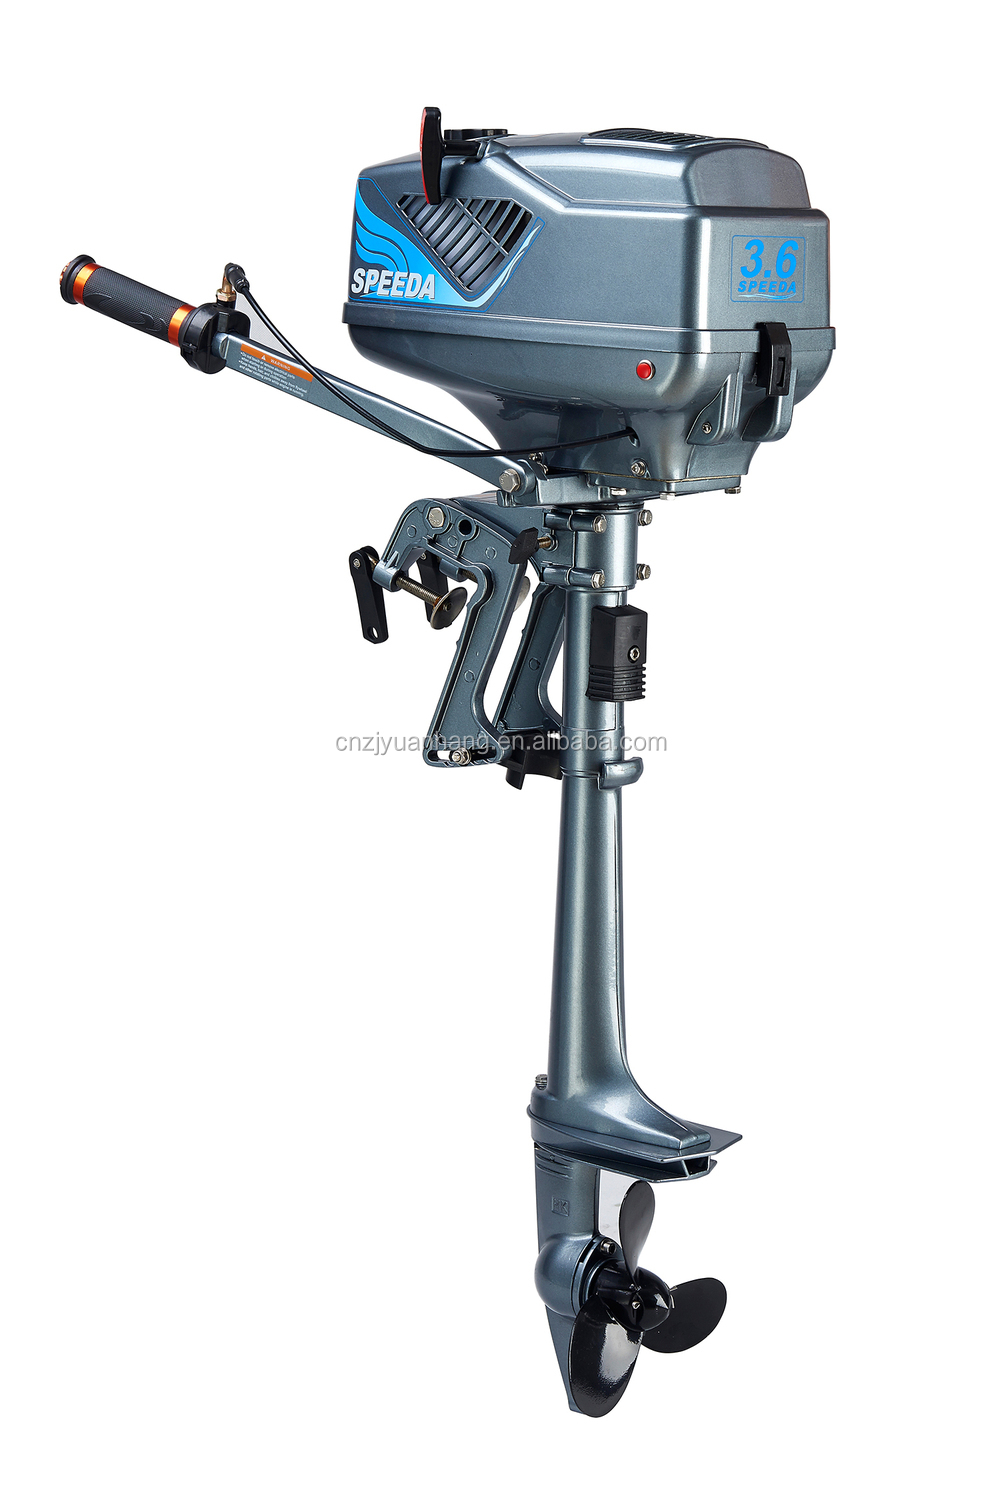 Used mercury outboard motors for sale boats parts marine for Used boat motors for sale in sc